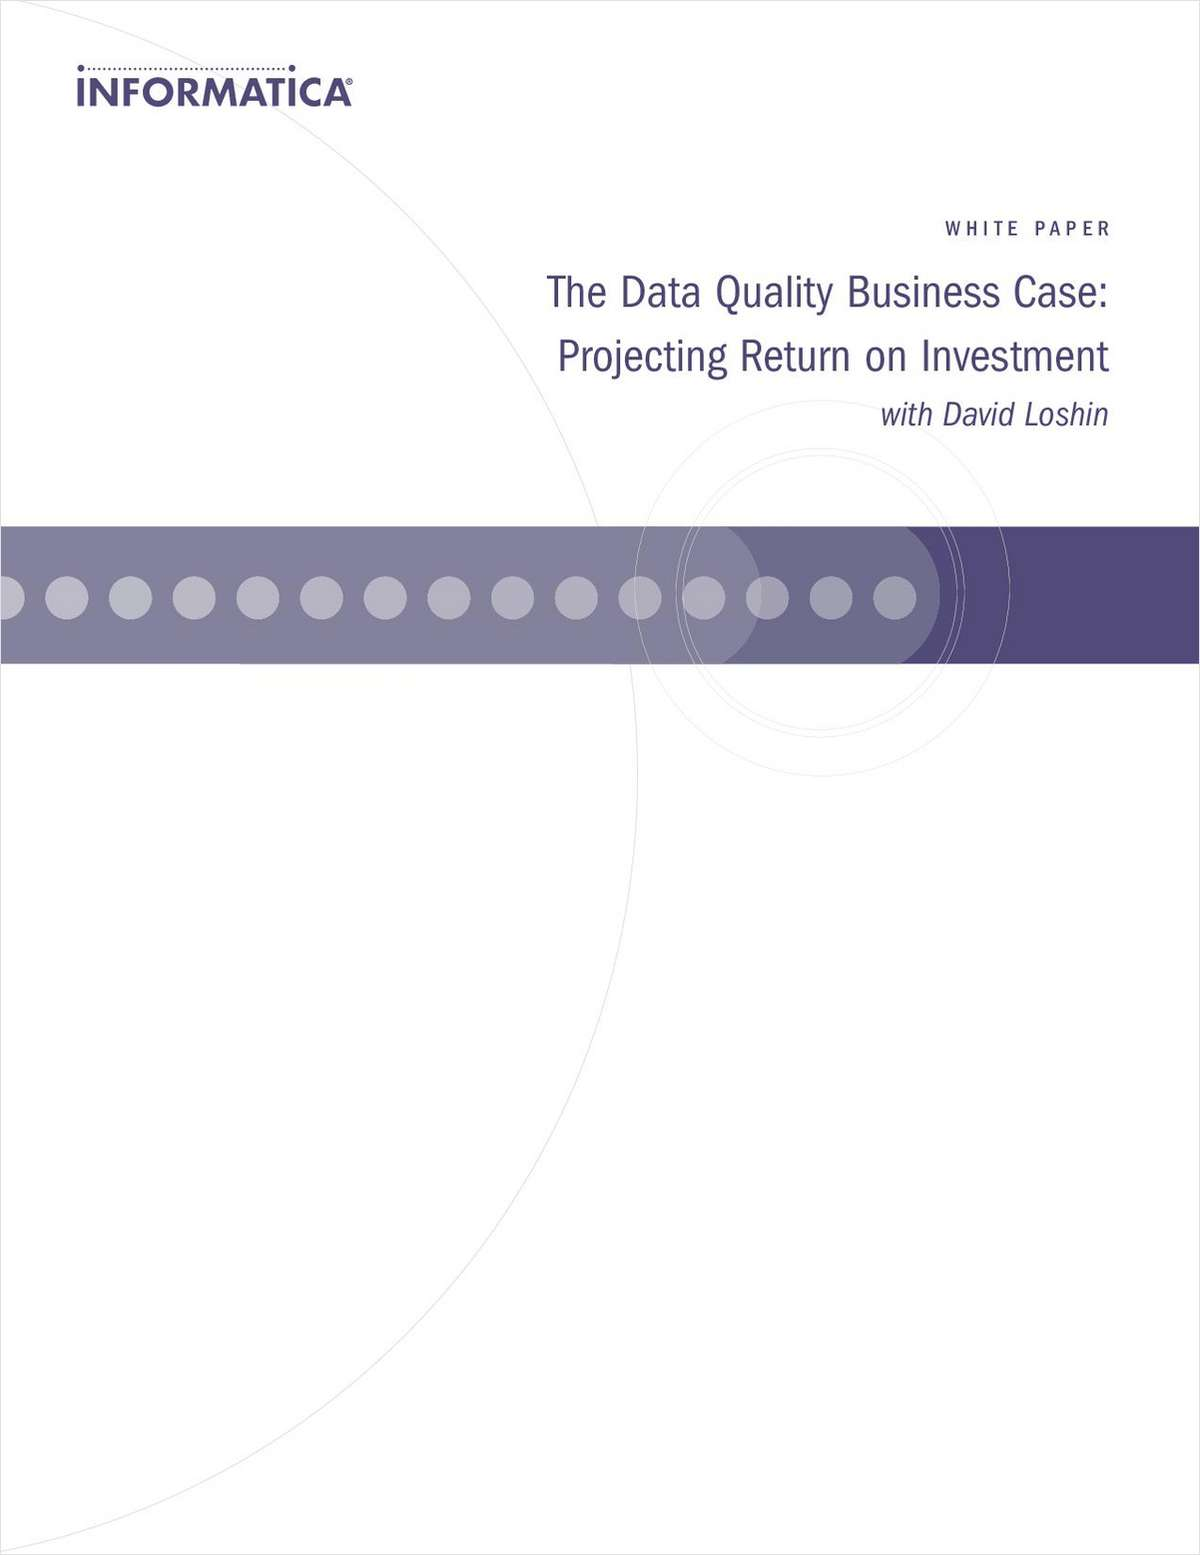 Data Quality Business Case: Projecting Return on Investment with David Loshin